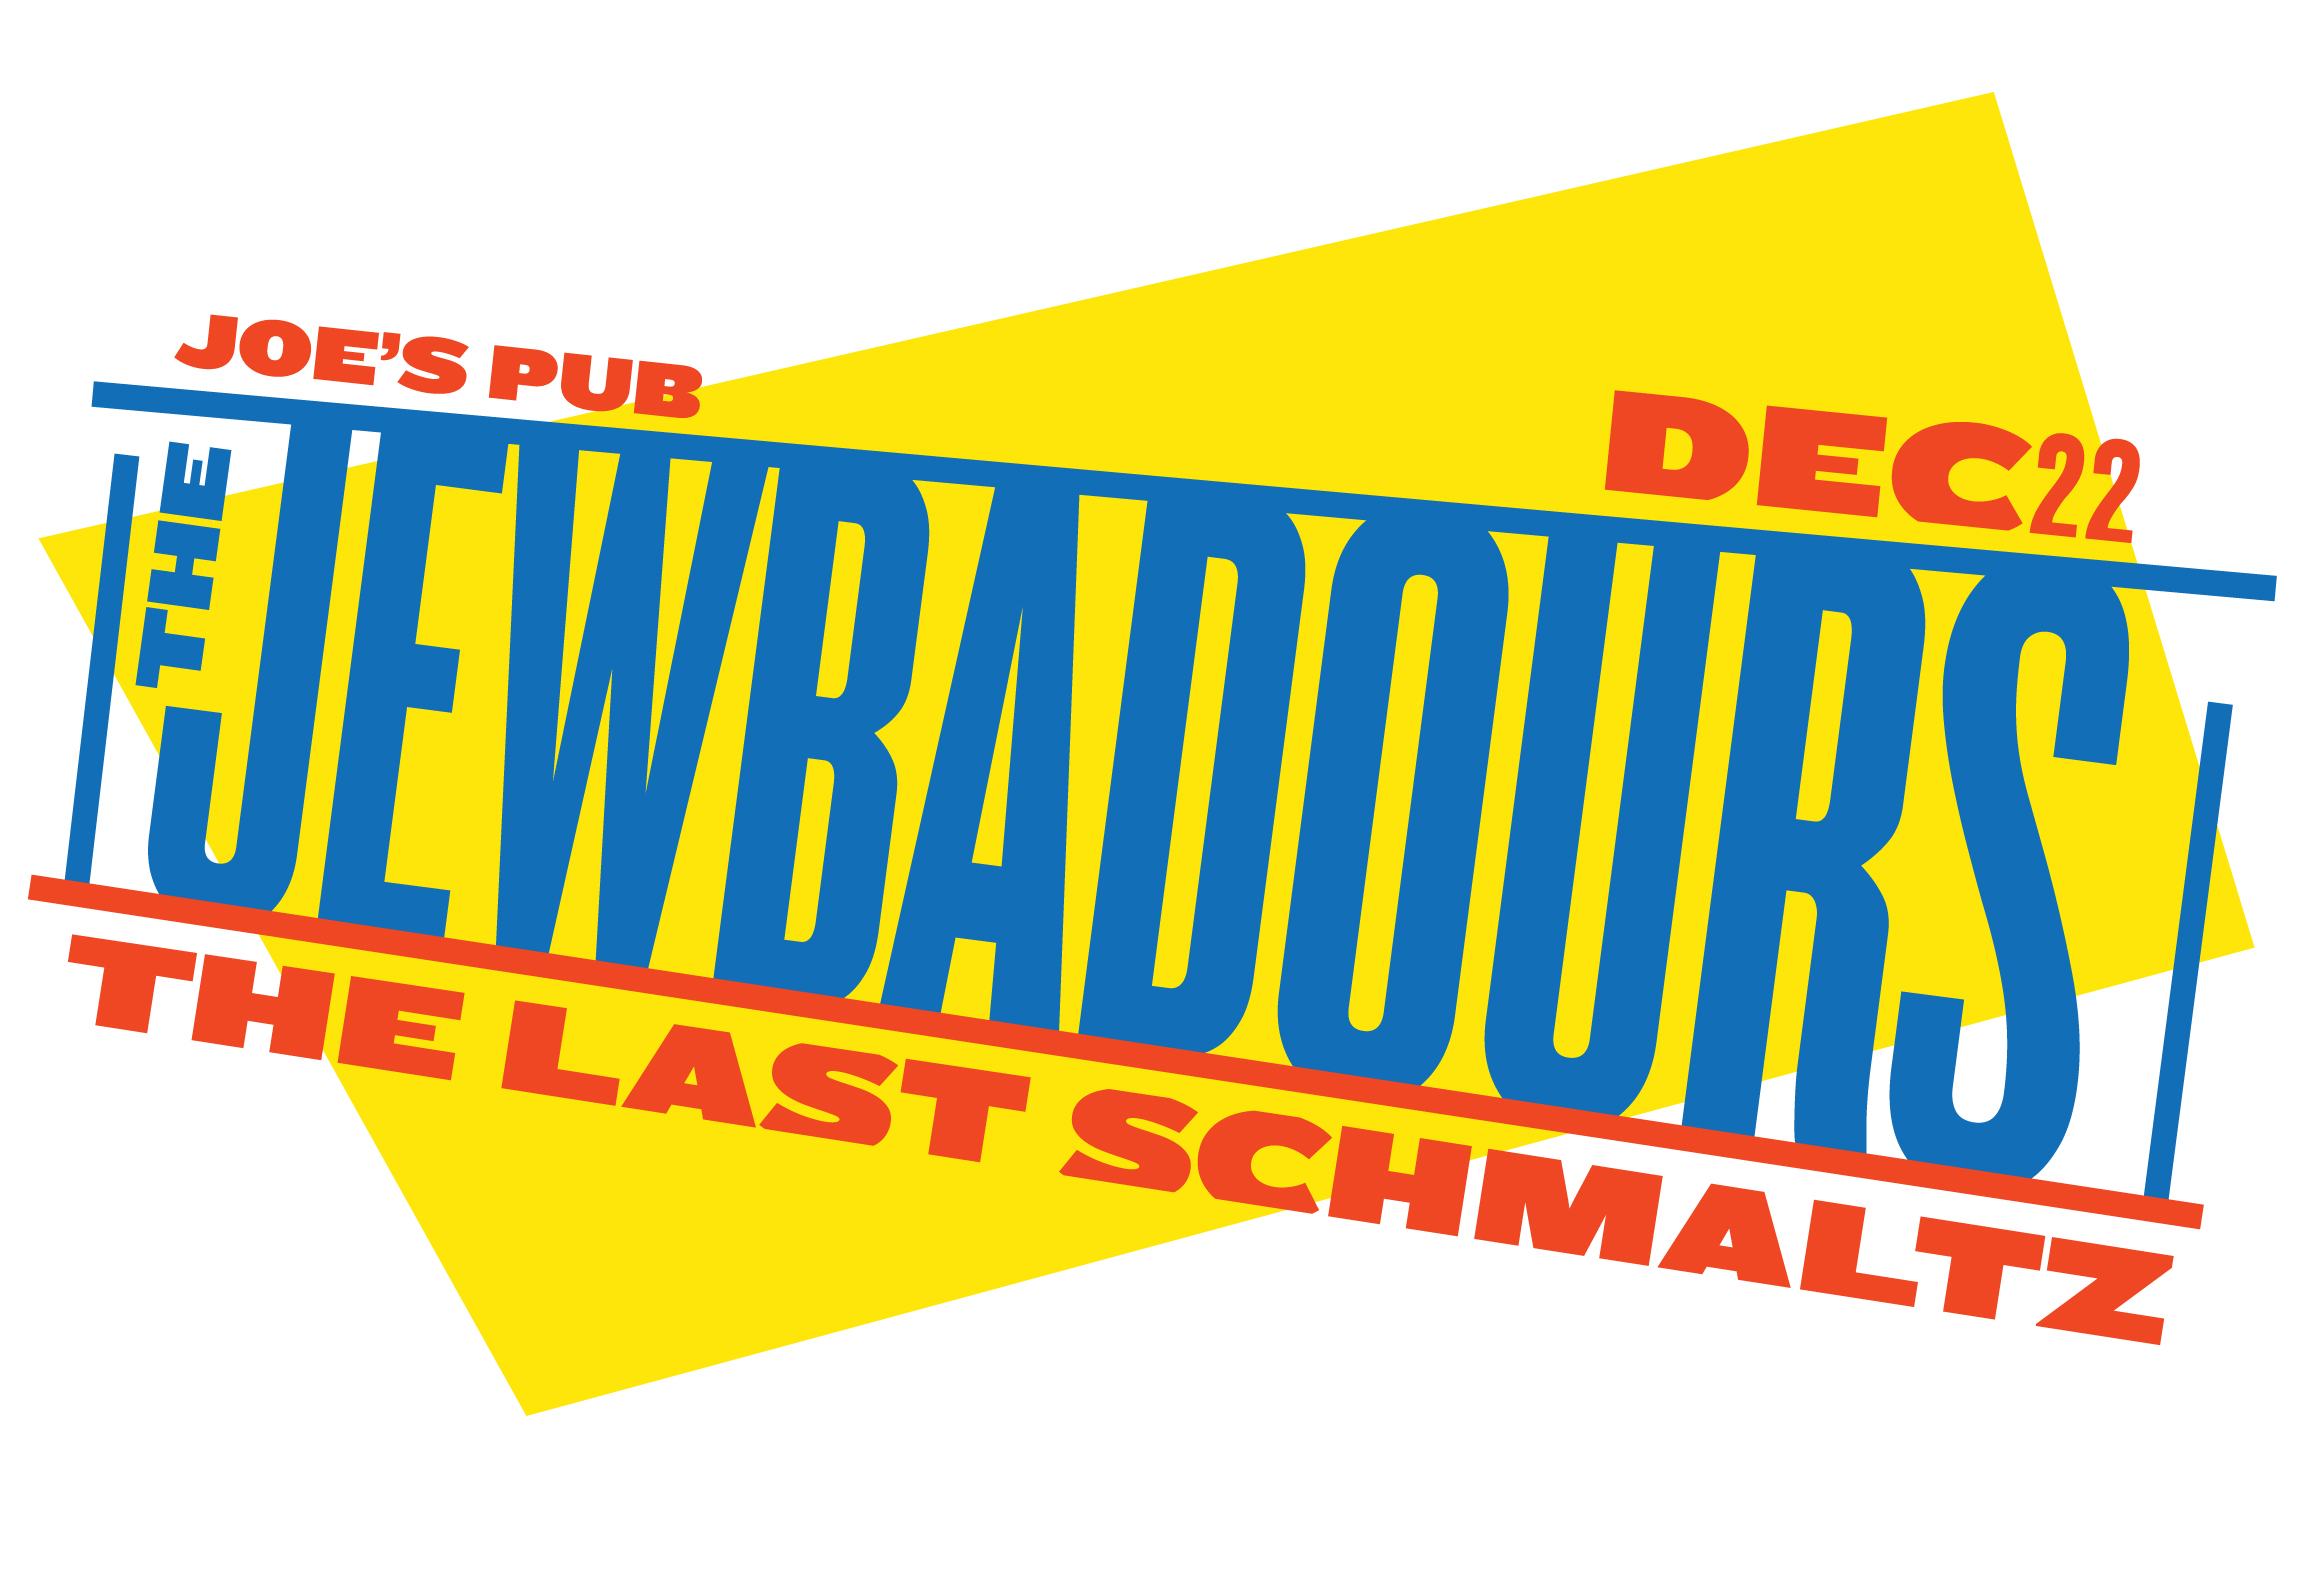 The Jewbadours: The Last Schmaltz